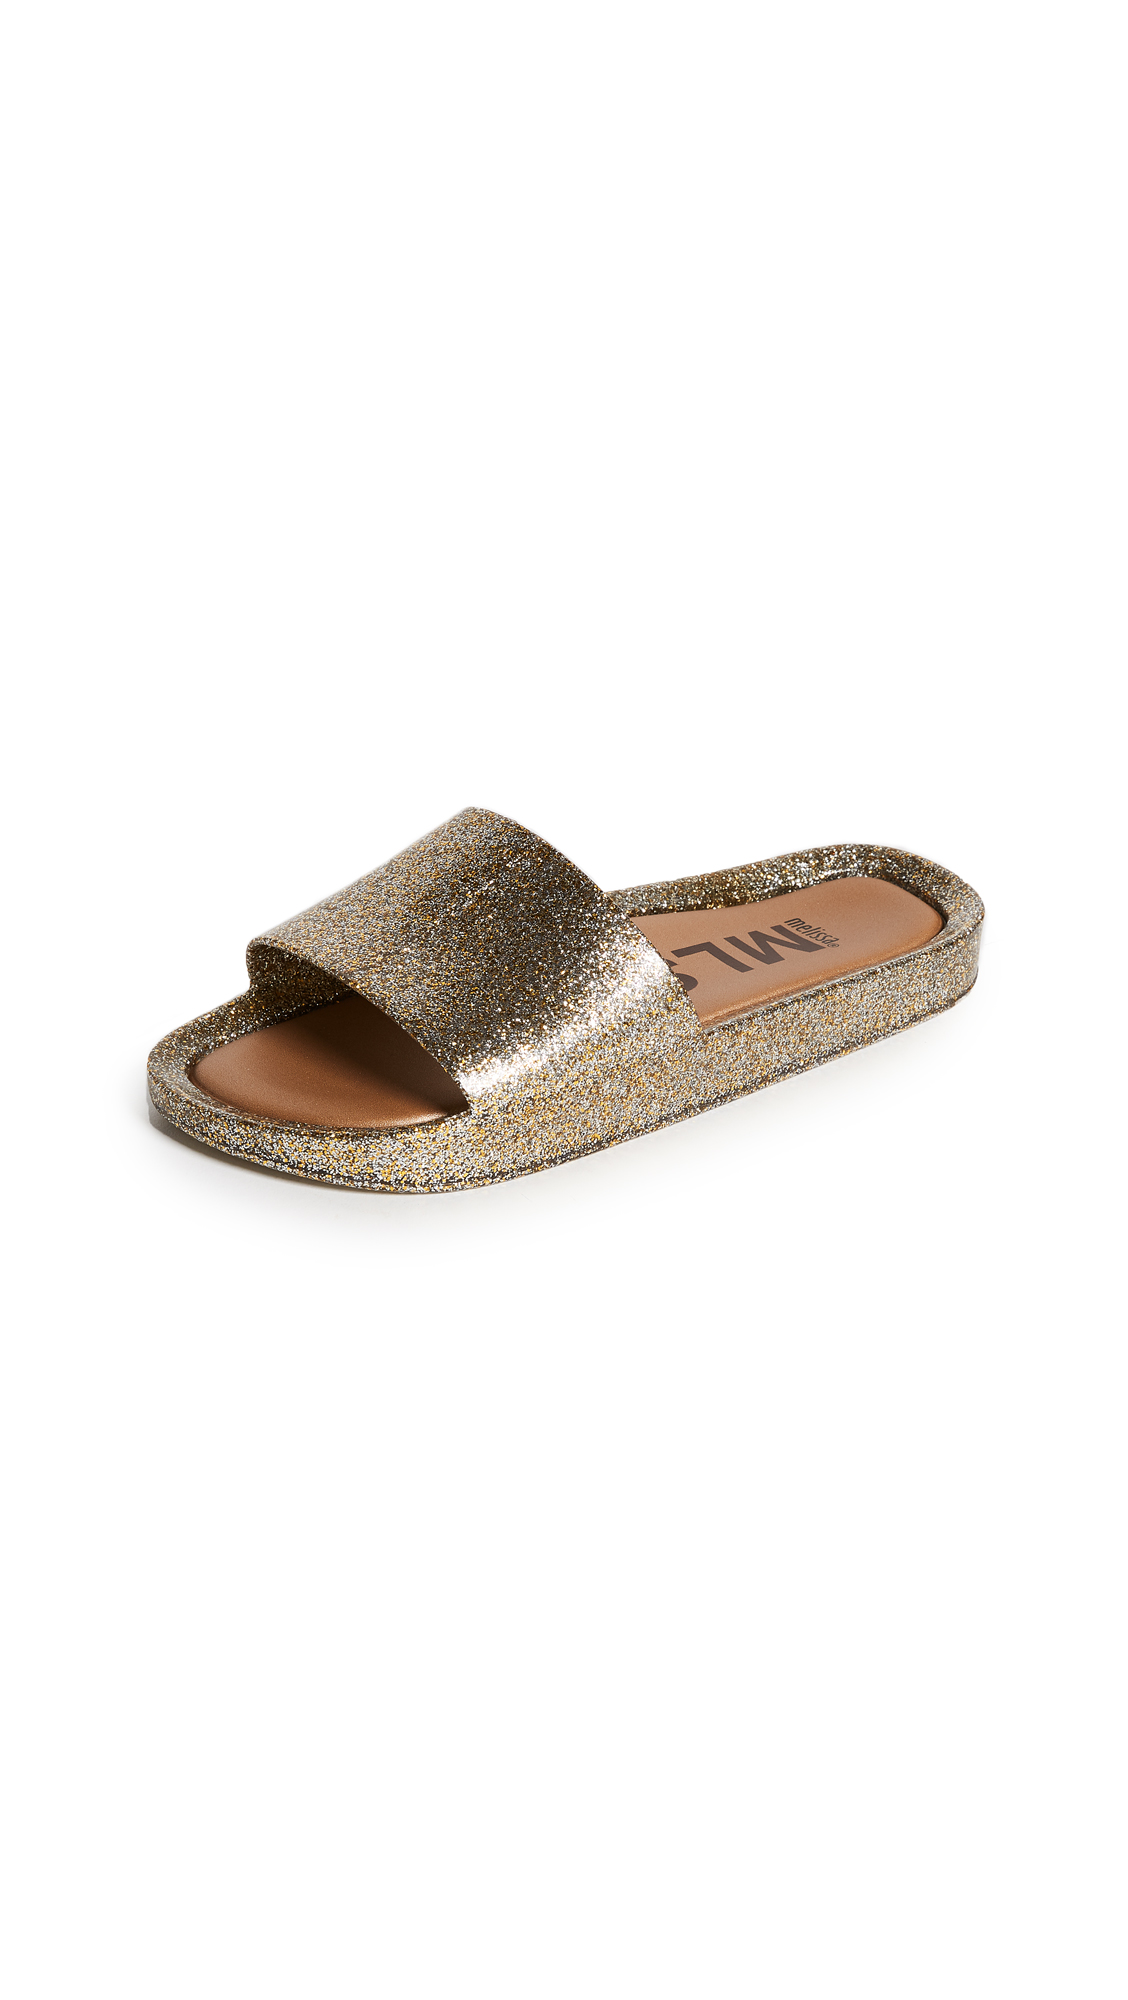 Melissa Beach Slides III - Gold Printed